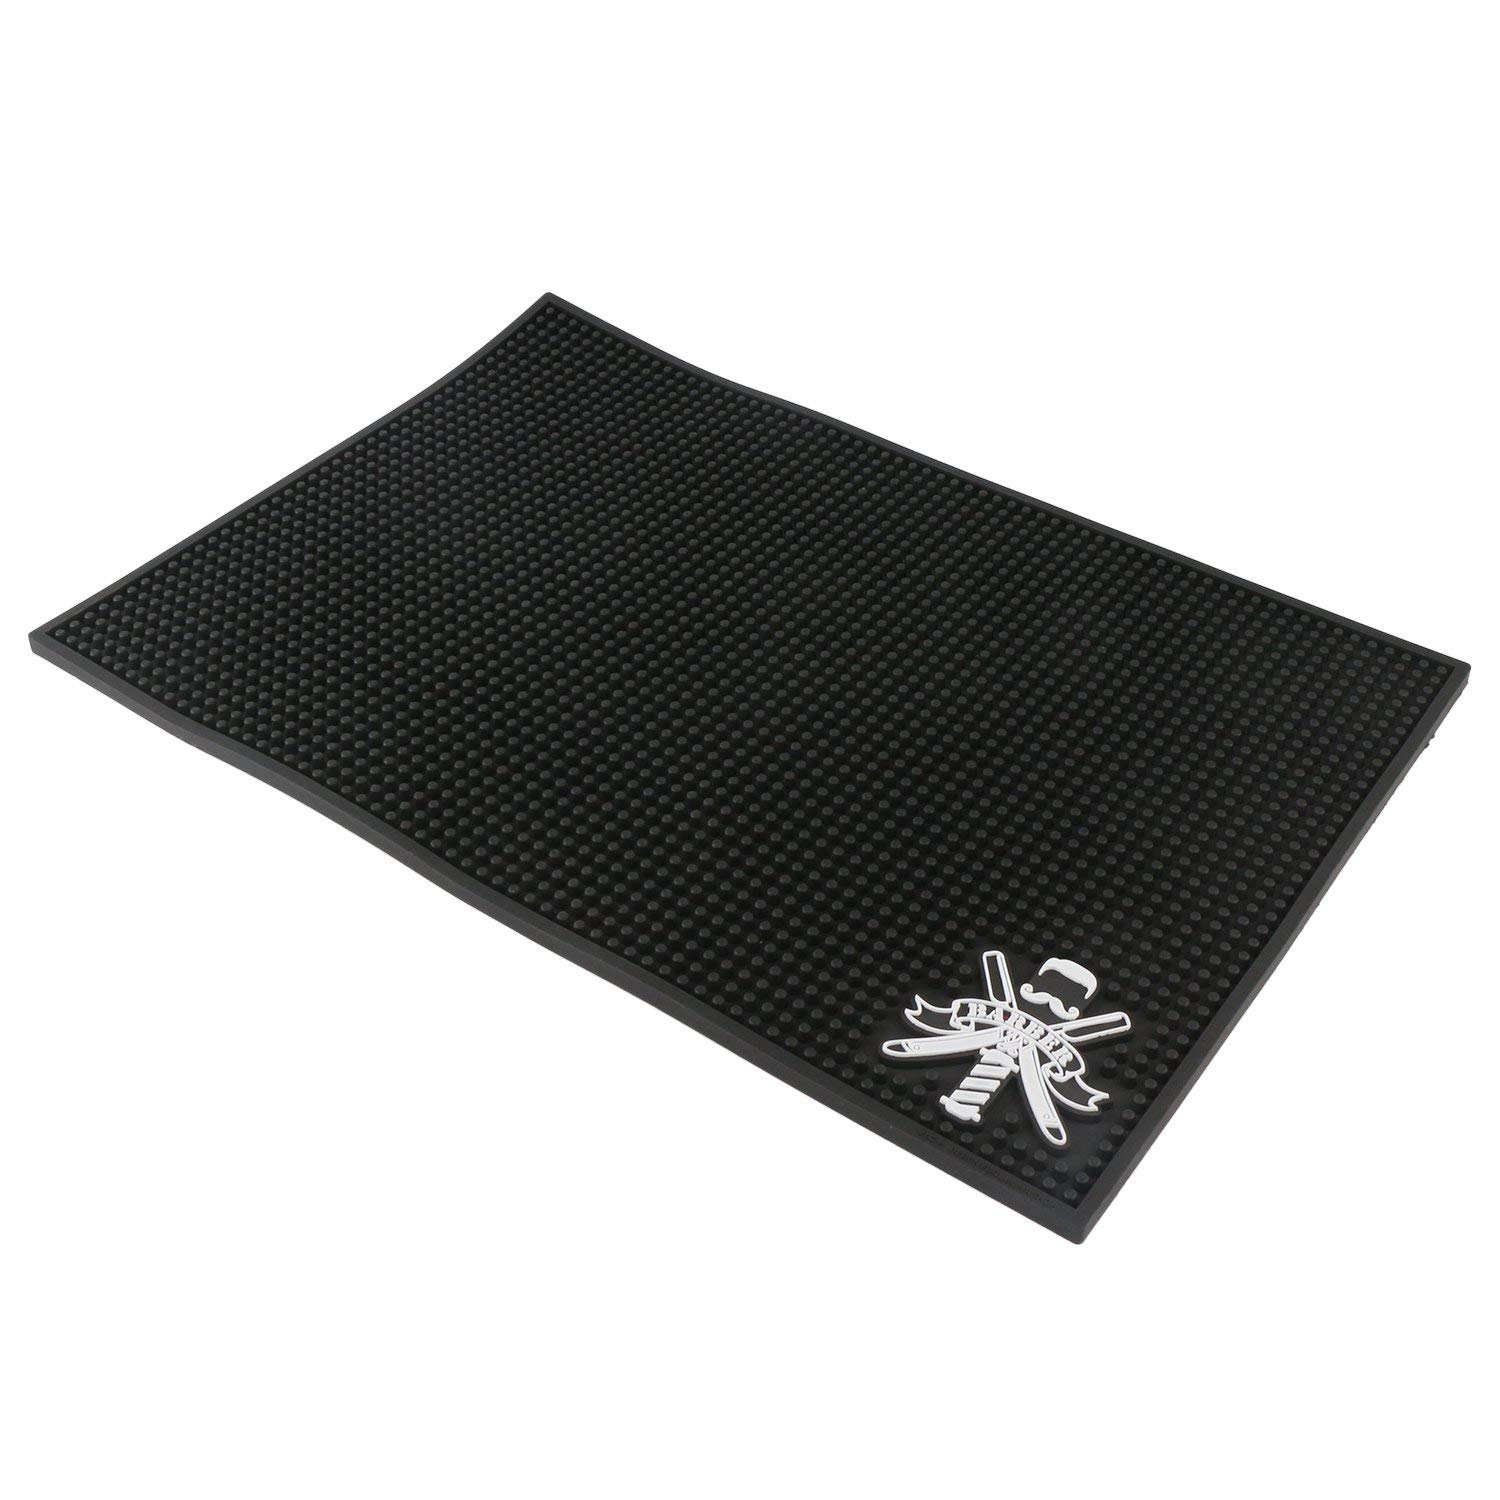 Segbeauty Barber Mats For Clippers